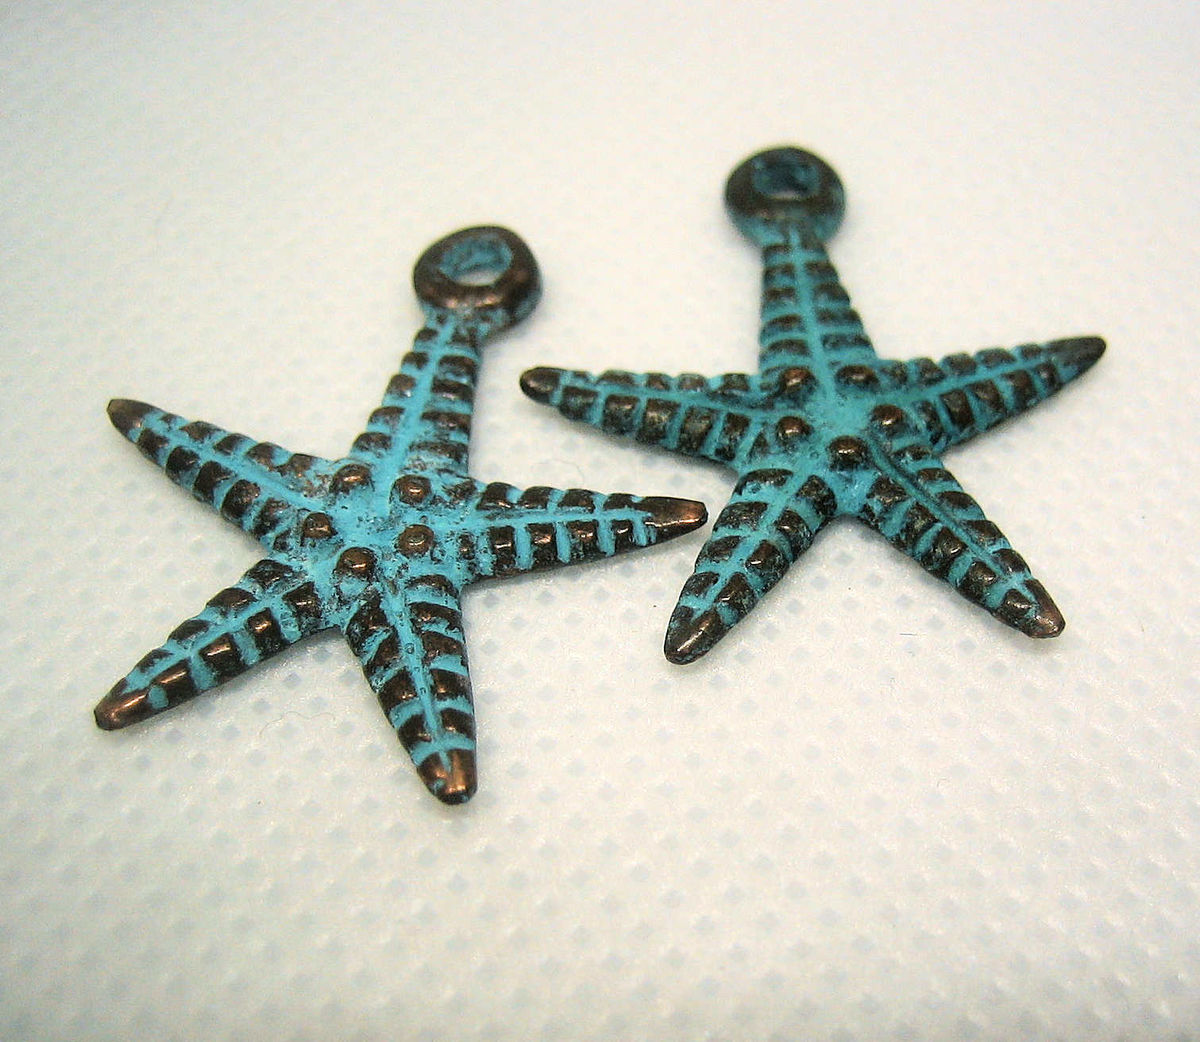 Cast Metal Starfish Pendants or Large Charms with Green Patina 2 pieces - product images  of